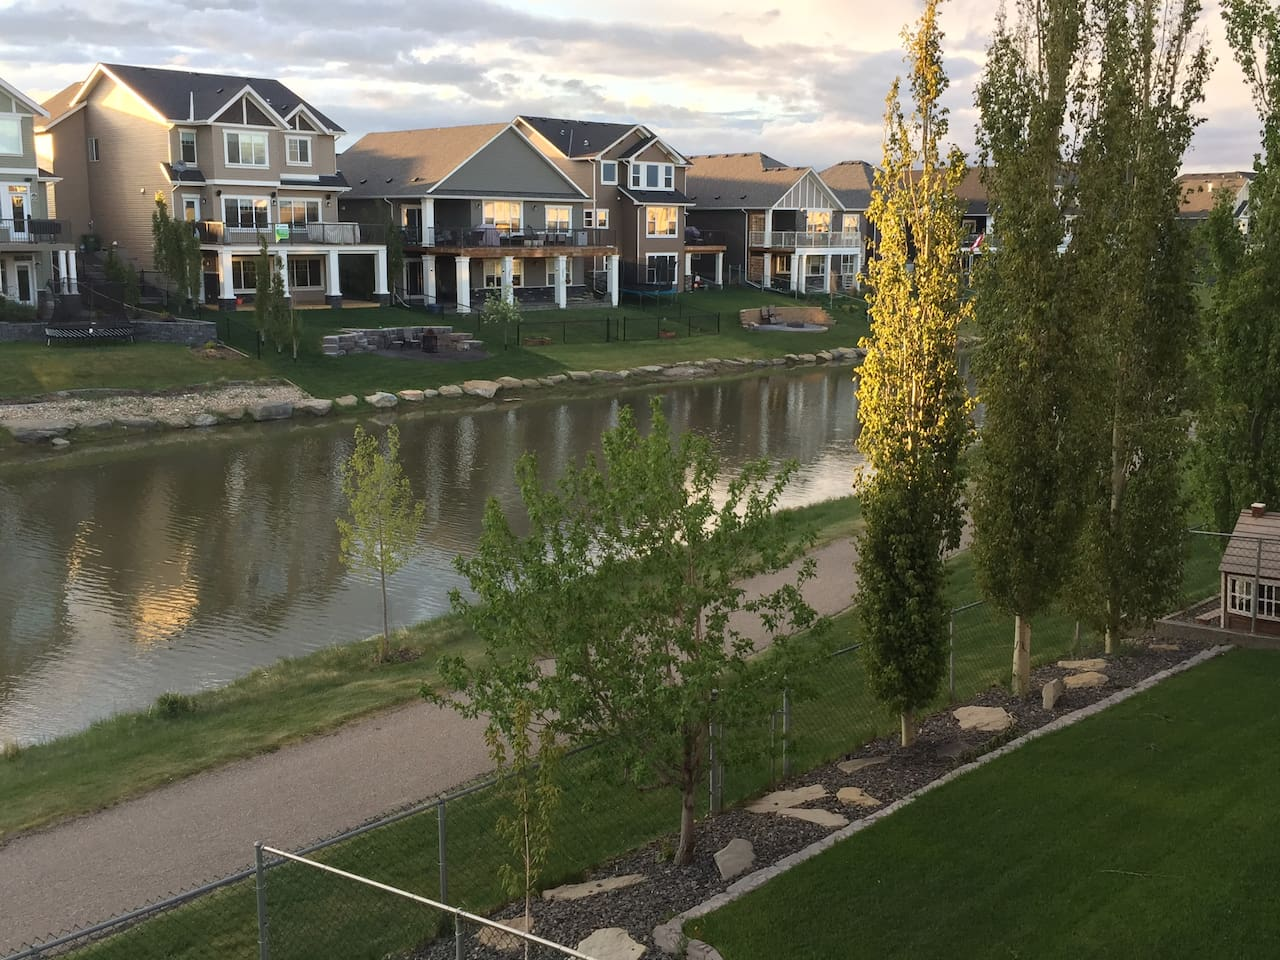 Gorgeous three bedroom home backing onto walking path, and canal! A true vacation home retreat! Whether you like canoeing, fishing, or beautiful strolls down the water side, this is the place for you! Beautiful chef dream kitchen, hand scraped hardwood floors, and beautiful south facing windows with water view.